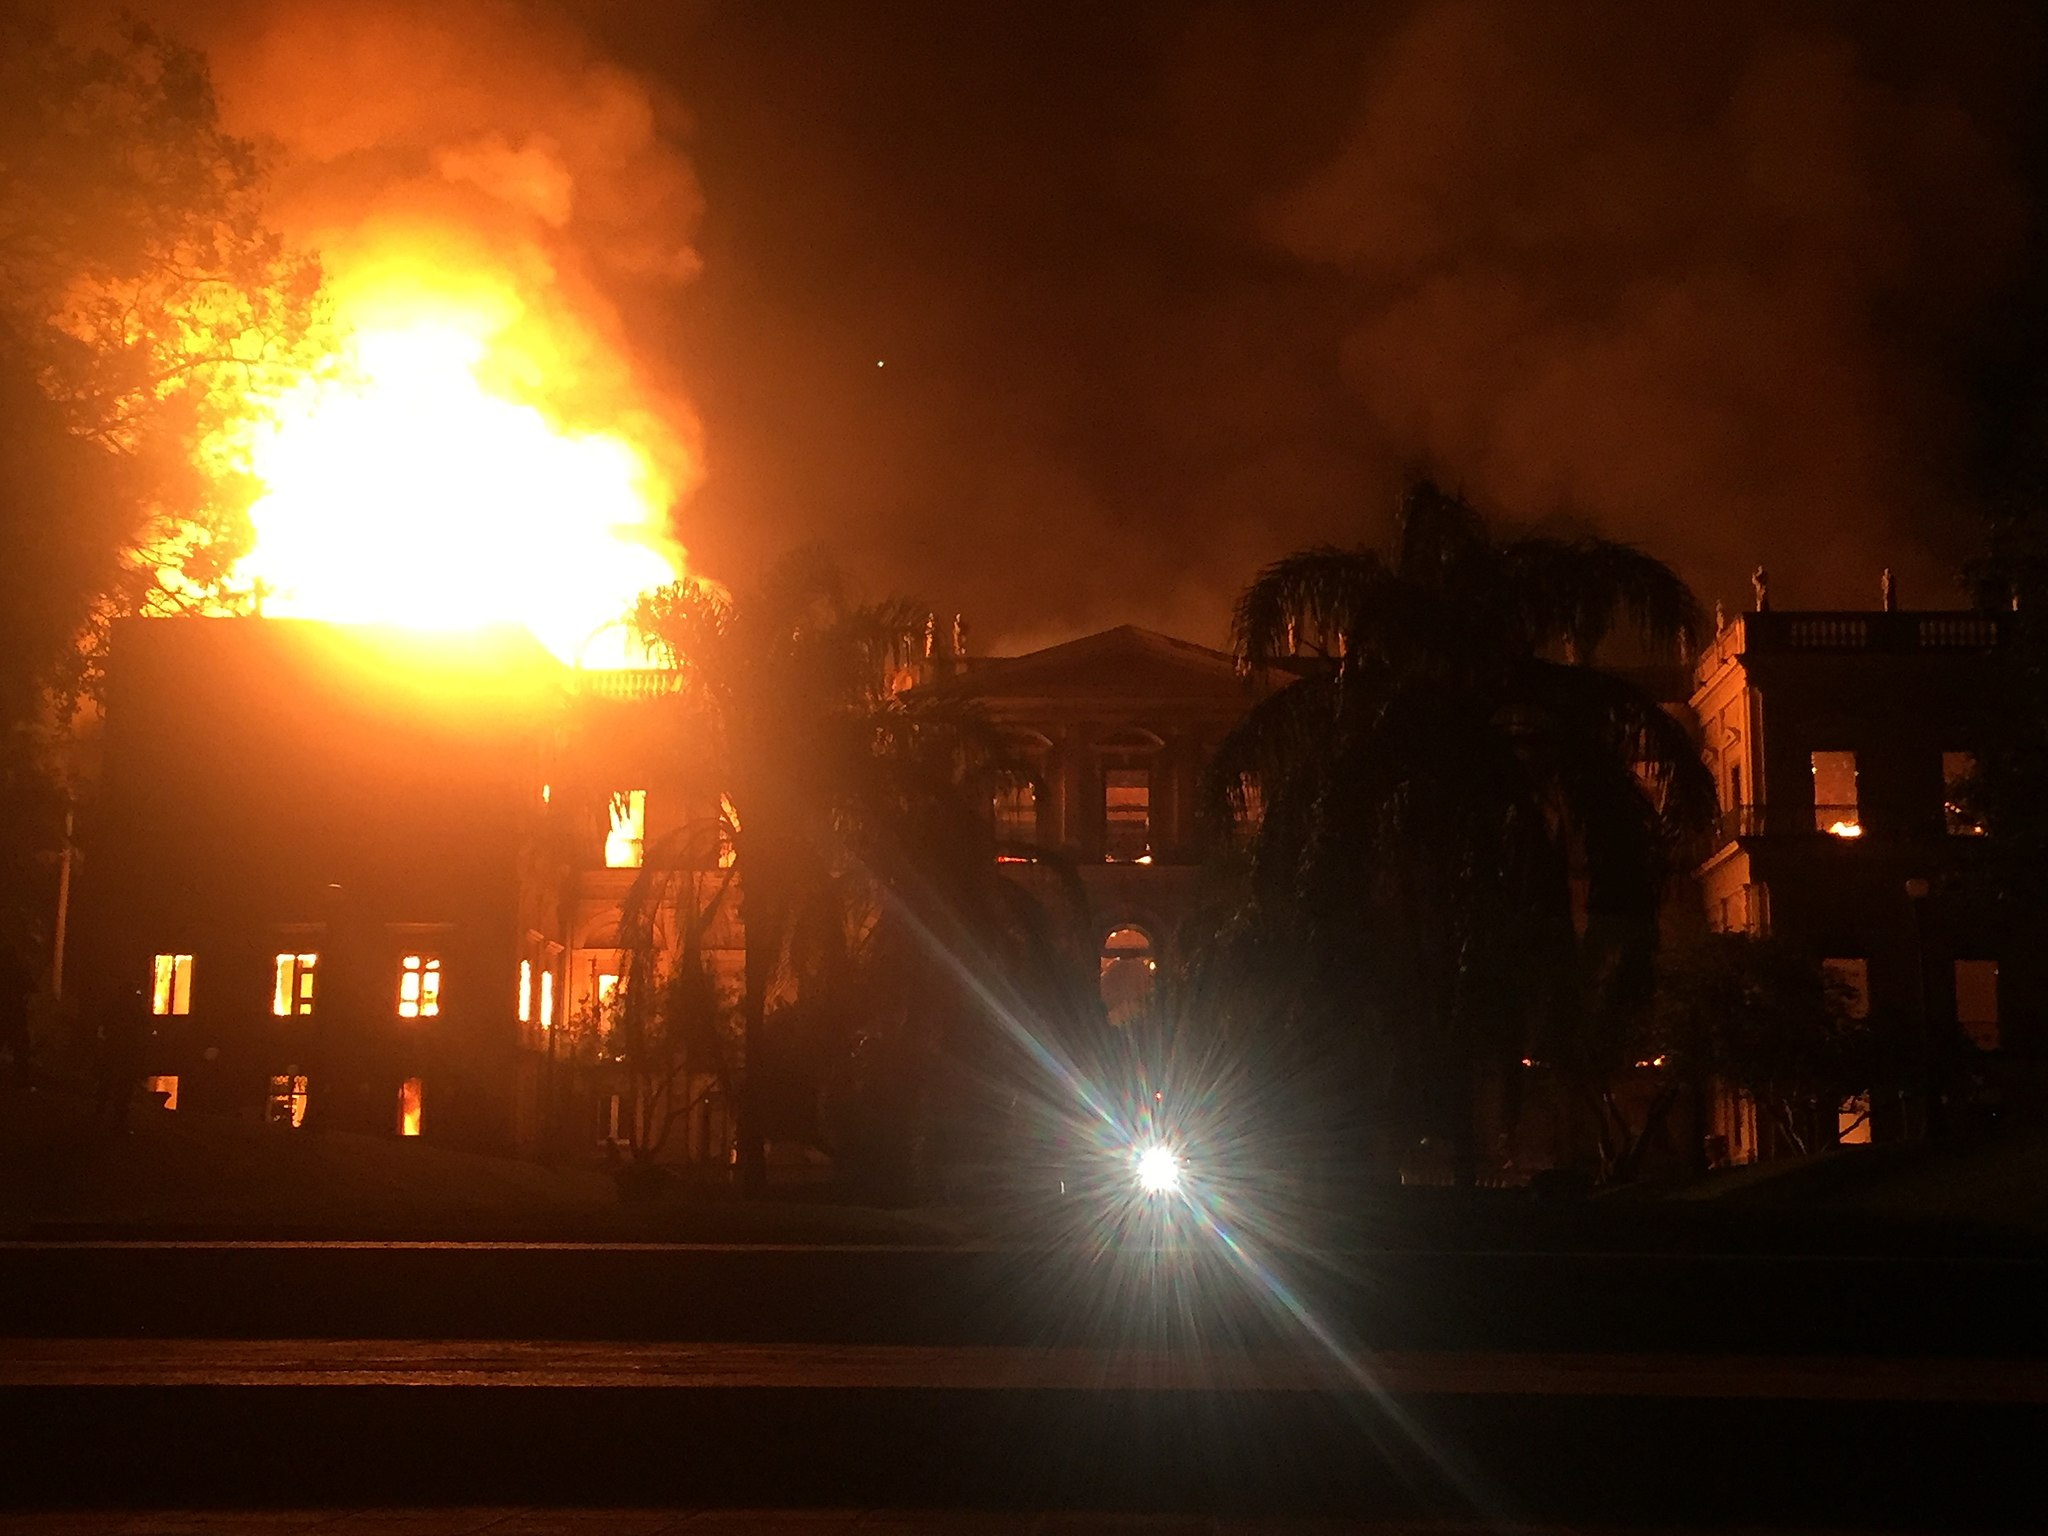 Panorama of Brazil's National Museum in flames on 2 September 2018. Incêndio no Museu Nacional, em 2 de setembro de 2018.  Photograph by Felipe Milanez. Licensed under Creative Commons Attribution-Share alike 4.0 International. Original location here.